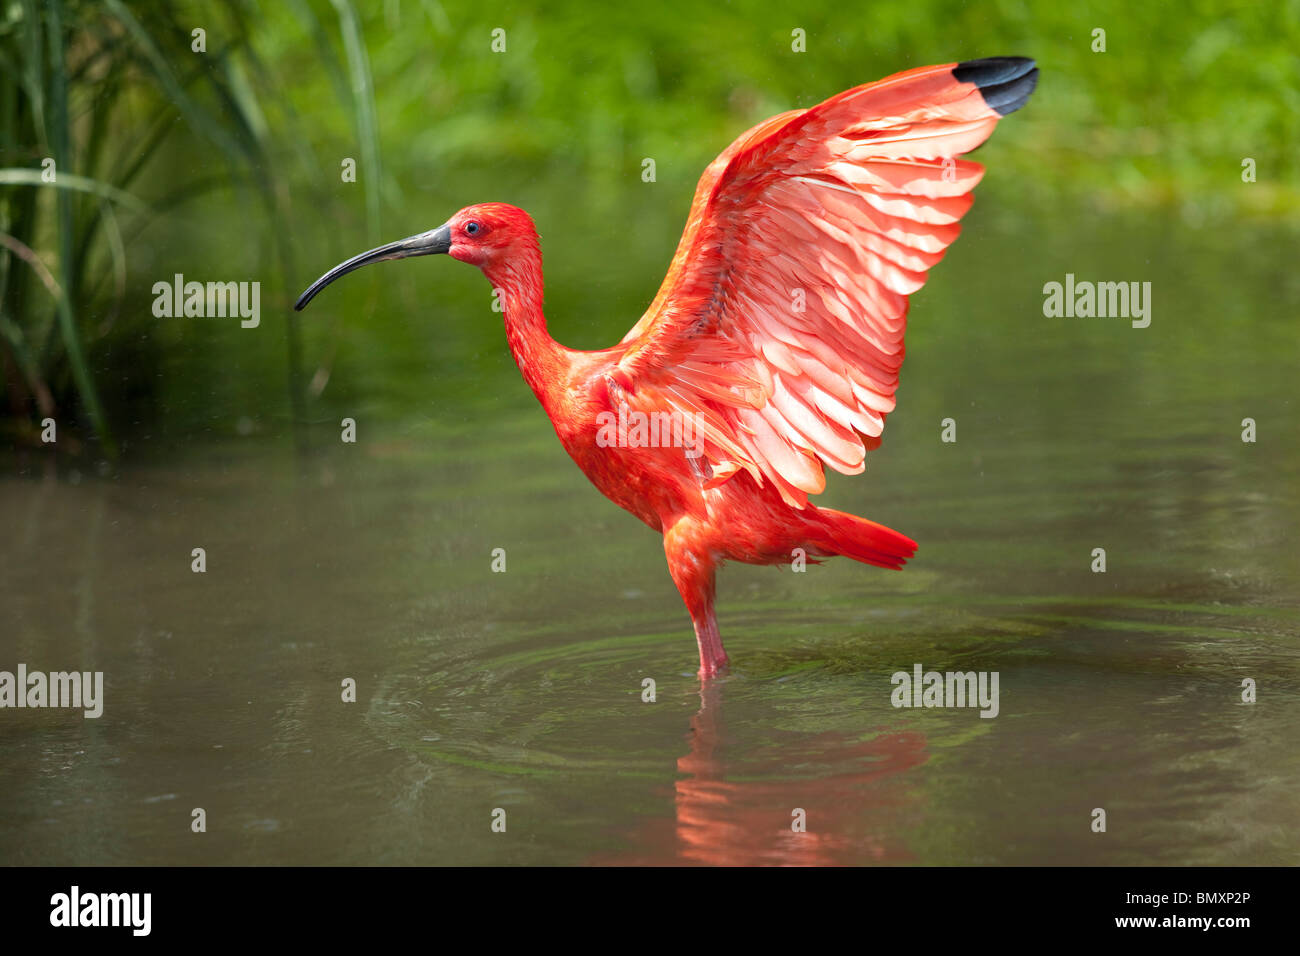 Scarlet Ibis stretching his wings - Stock Image